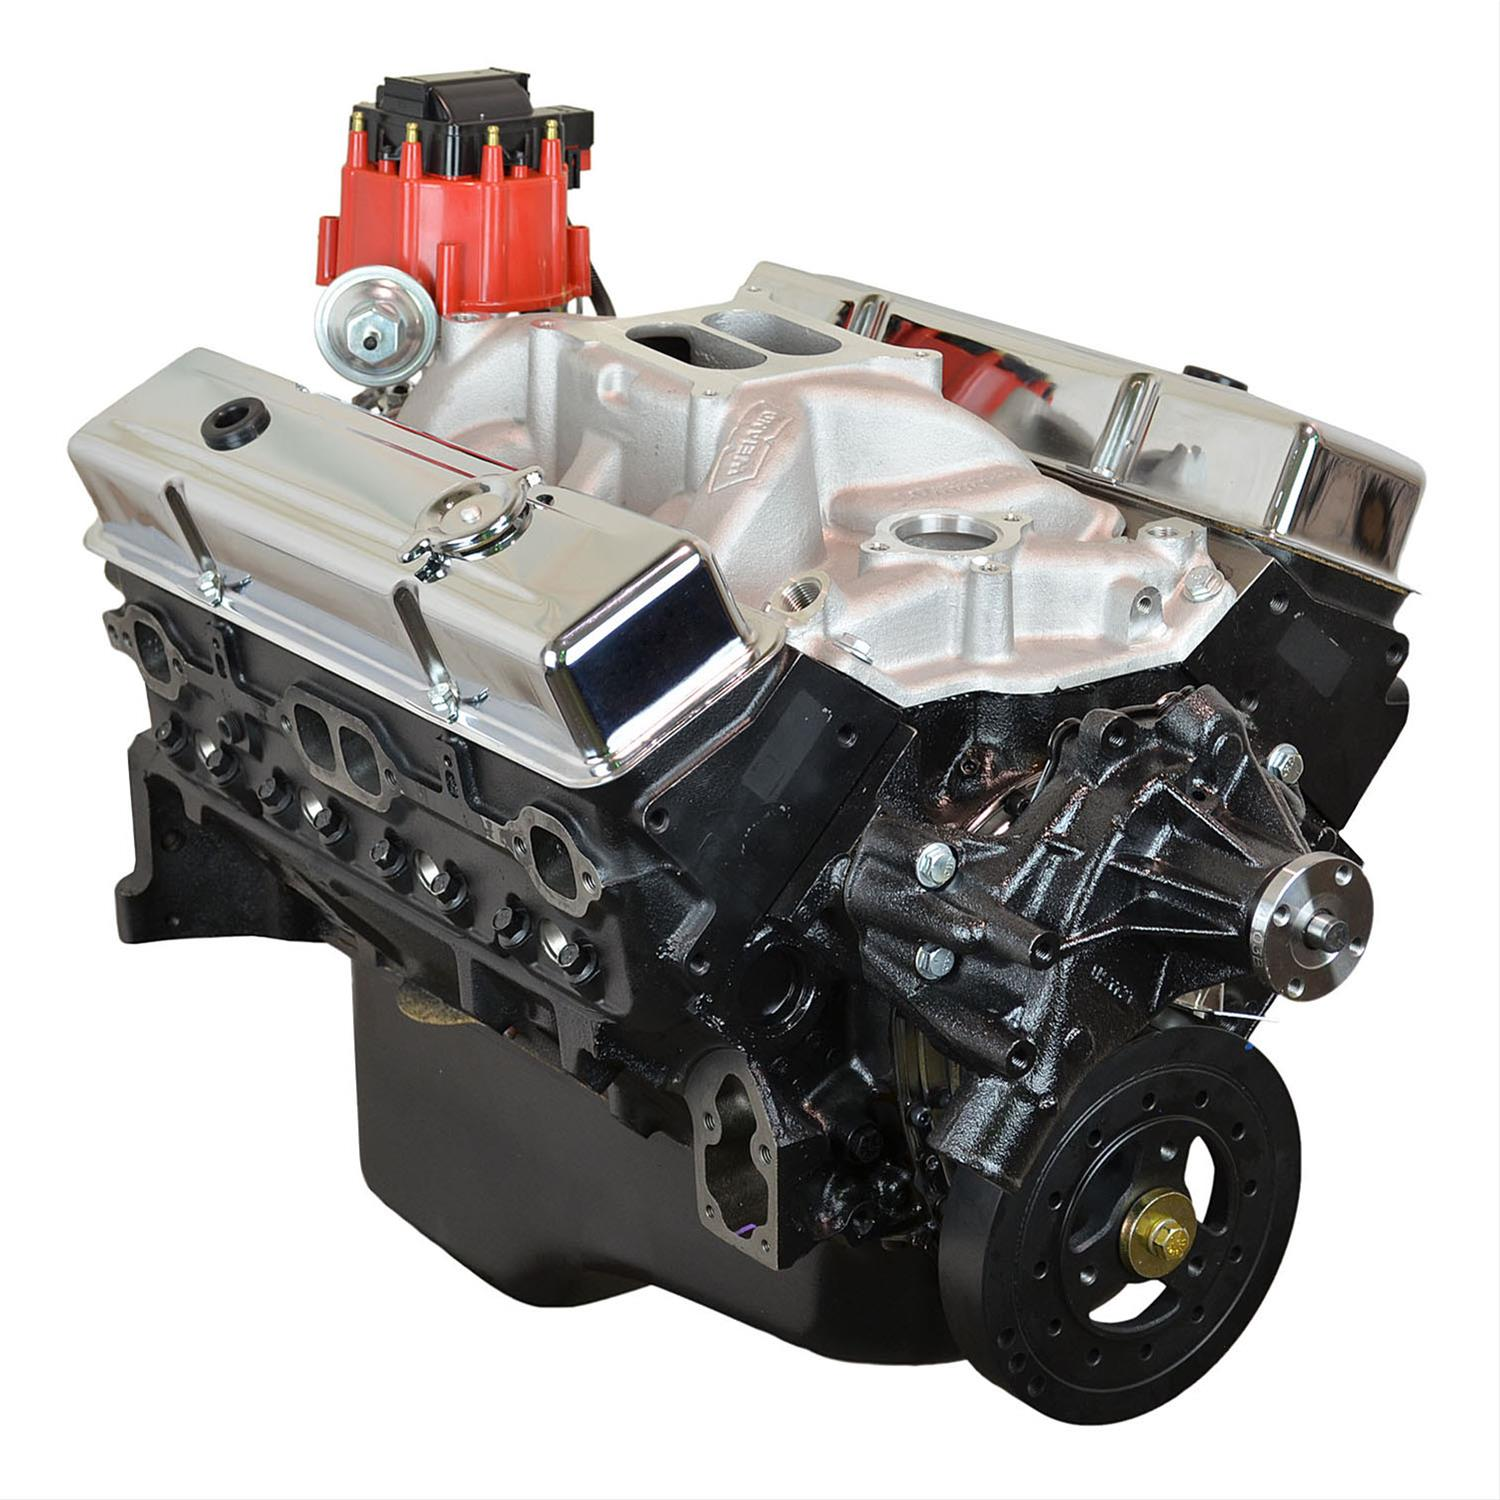 Gm Crate Engines >> Atk High Performance Gm 350 325 Hp Stage 2 Long Block Crate Engines Hp291pm